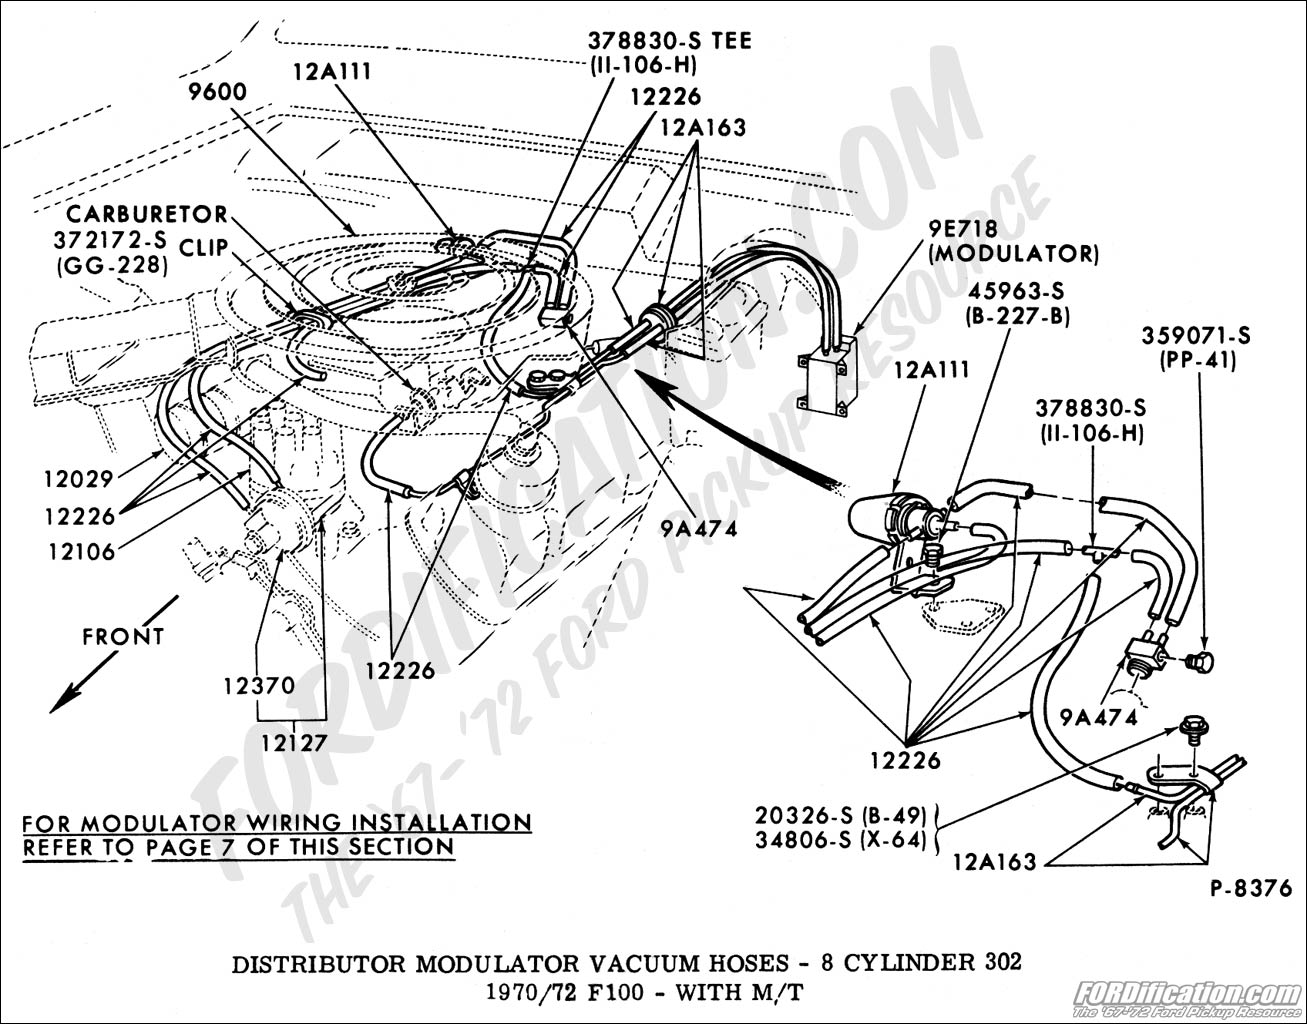 hight resolution of 1976 f100 302 wiring diagram wiring diagram img 1974 ford f100 360 vacuum diagram on jeep 4x4 vacuum diagram 1986